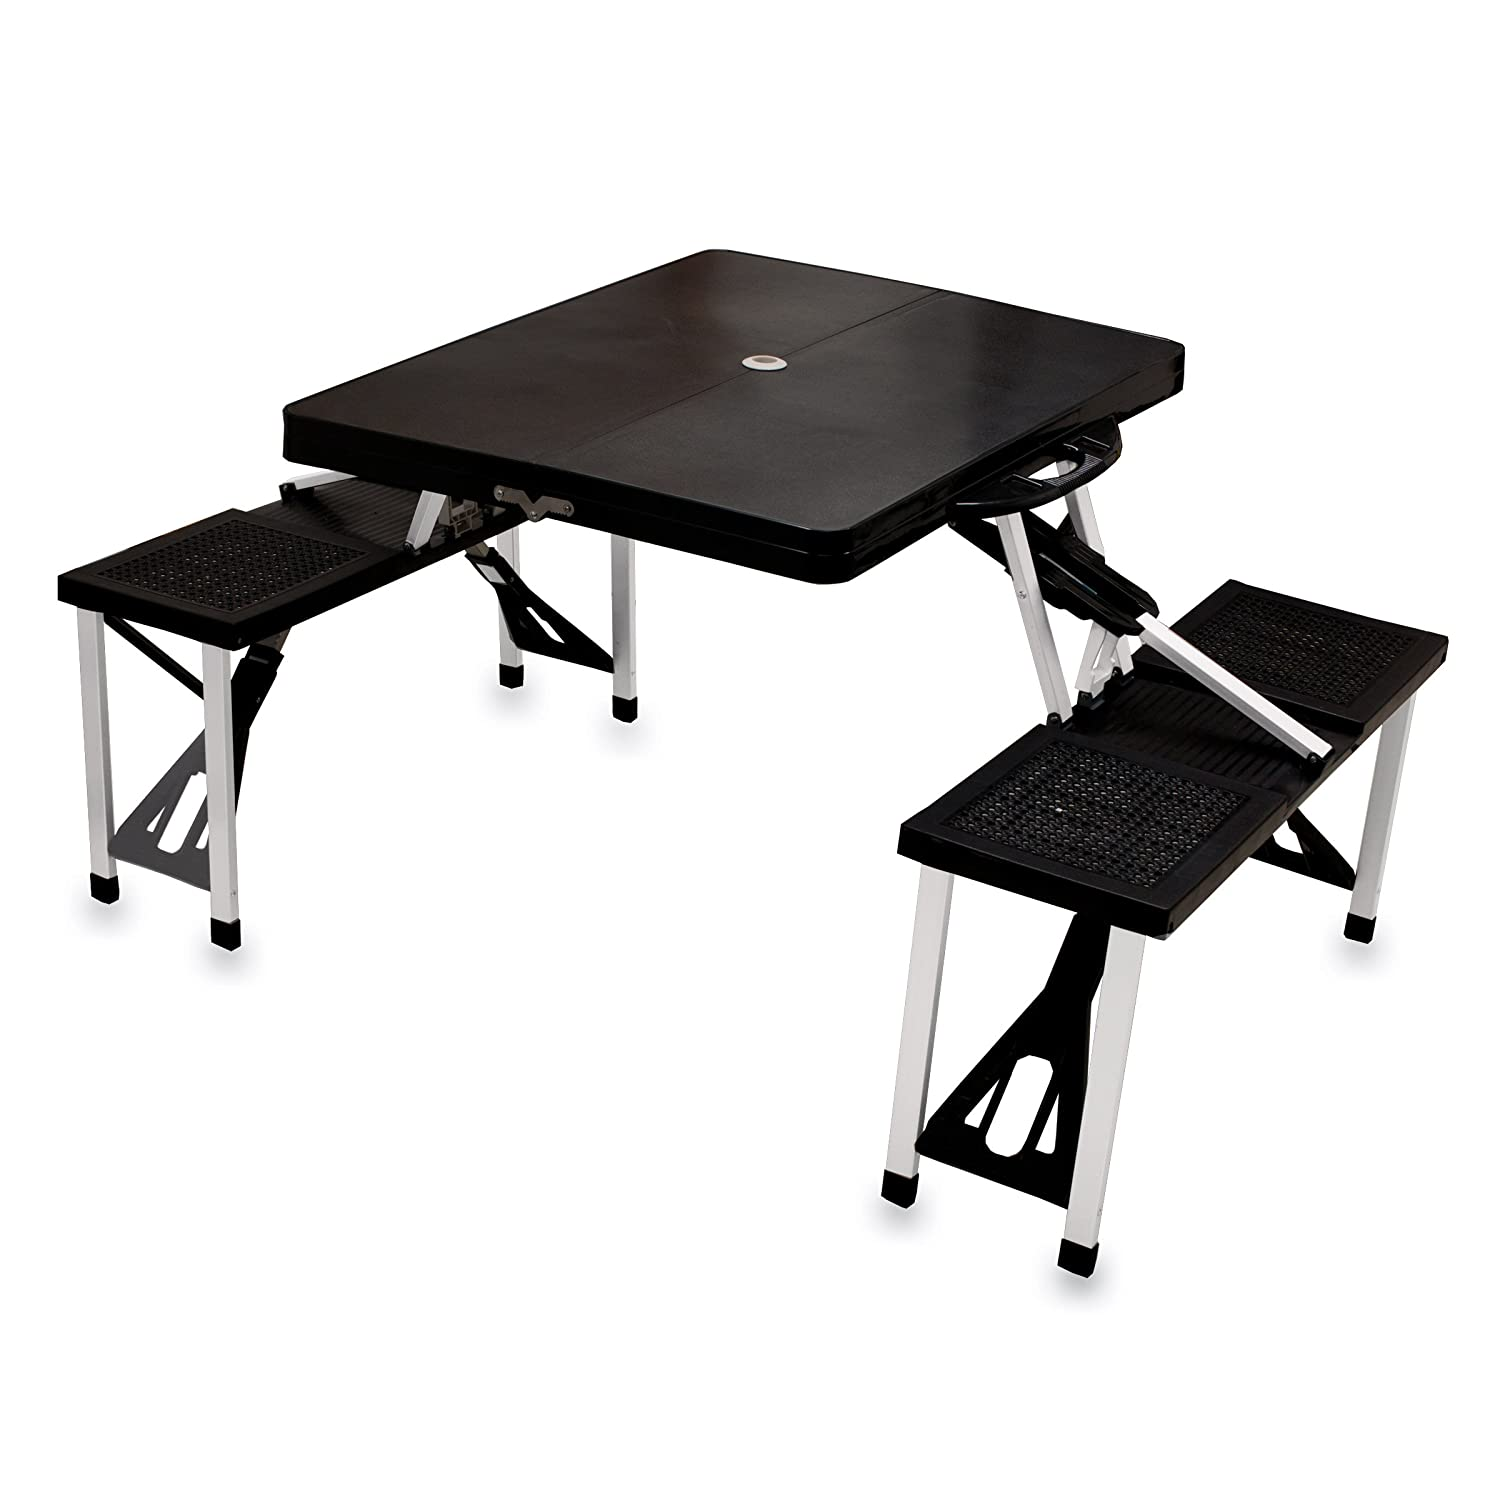 New Folding Picnic Table Bench Chairs Portable Outdoor Aluminum Frame Black Ebay